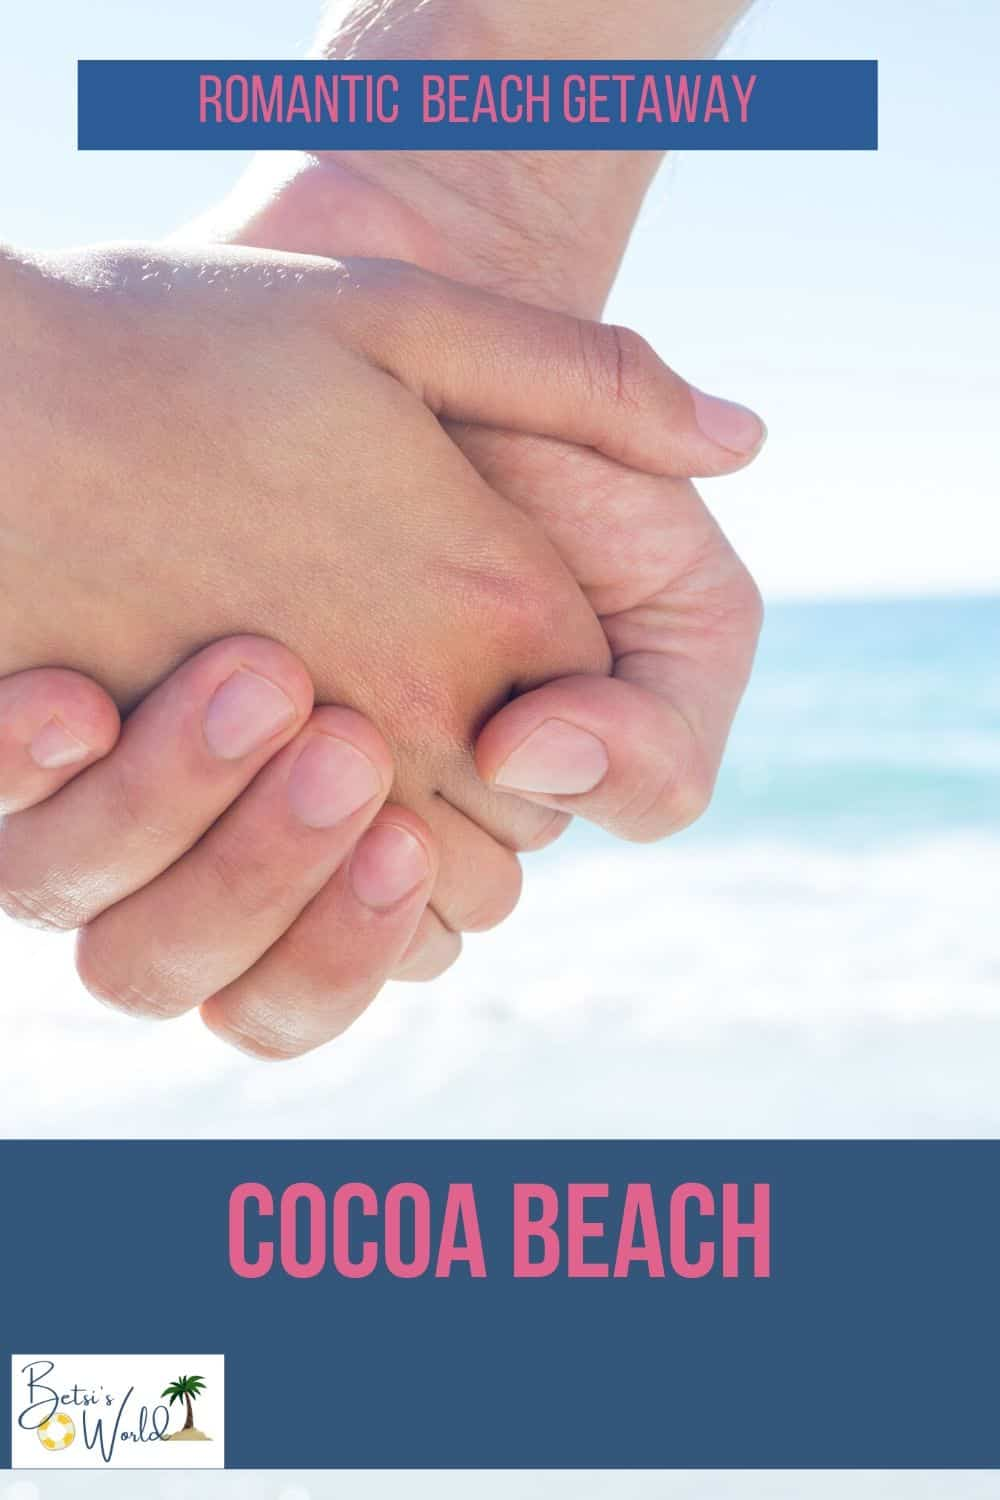 A romantic getaway to Cocoa Beach to experience the fun, sun, sand, and surf and explore all the Space Coast has to offer? Yes Please! Heading to Cocoa Beach is perfect for couples looking for a fun romantic getaway. #Florida #Floridagetaway #Beachgetaway #Floridabeachgetaway